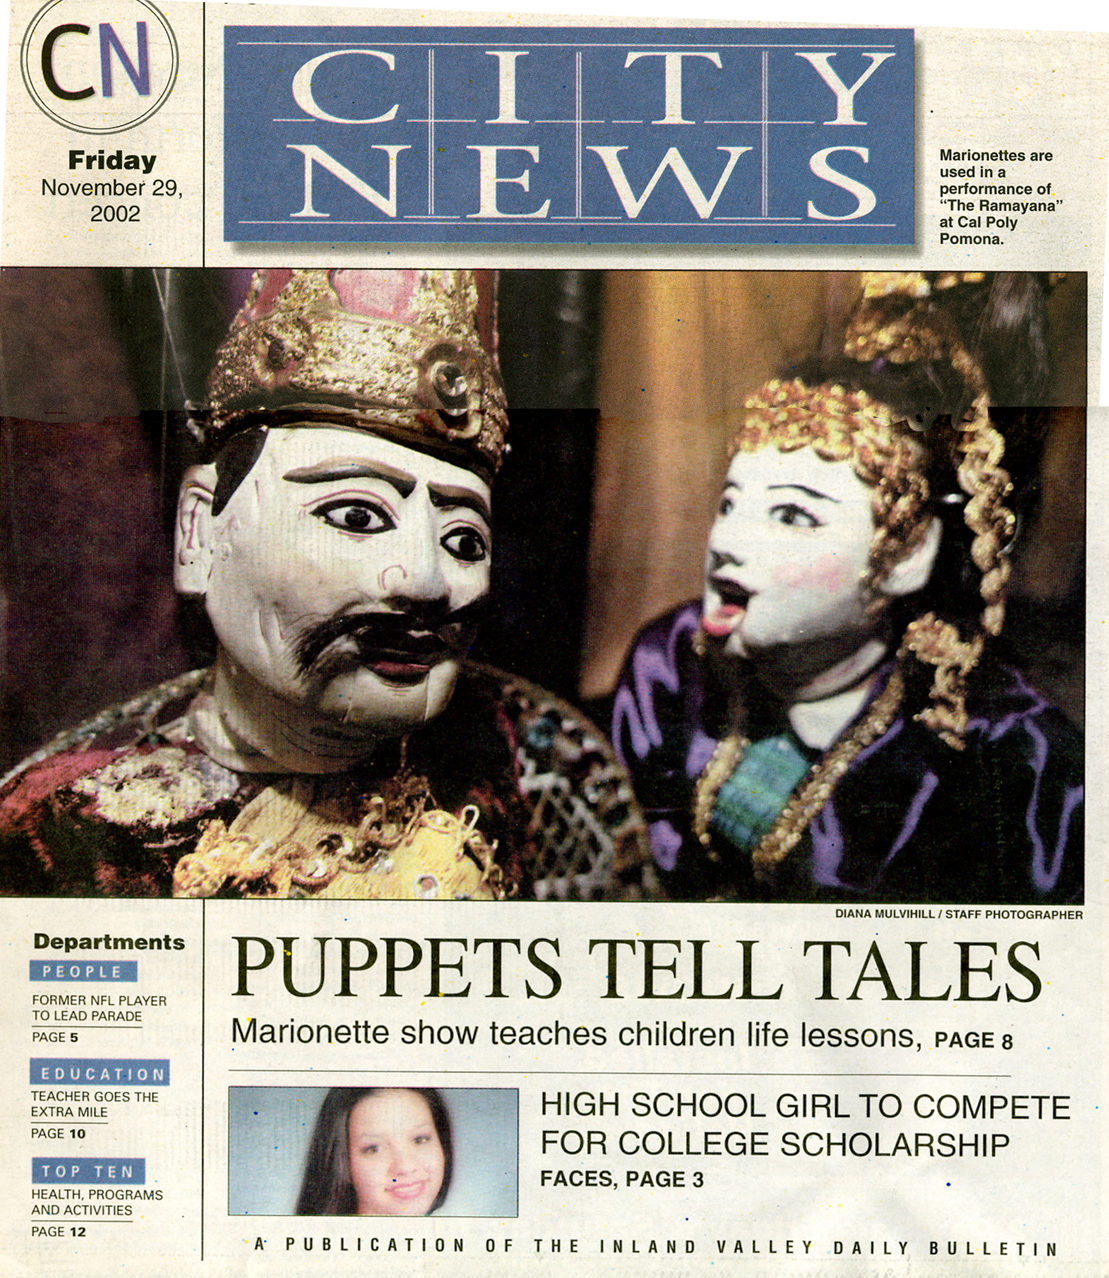 Puppets Tell Tales News Article on Penelope Torribio's marionette and shadow puppet adaptation of the Ramayana